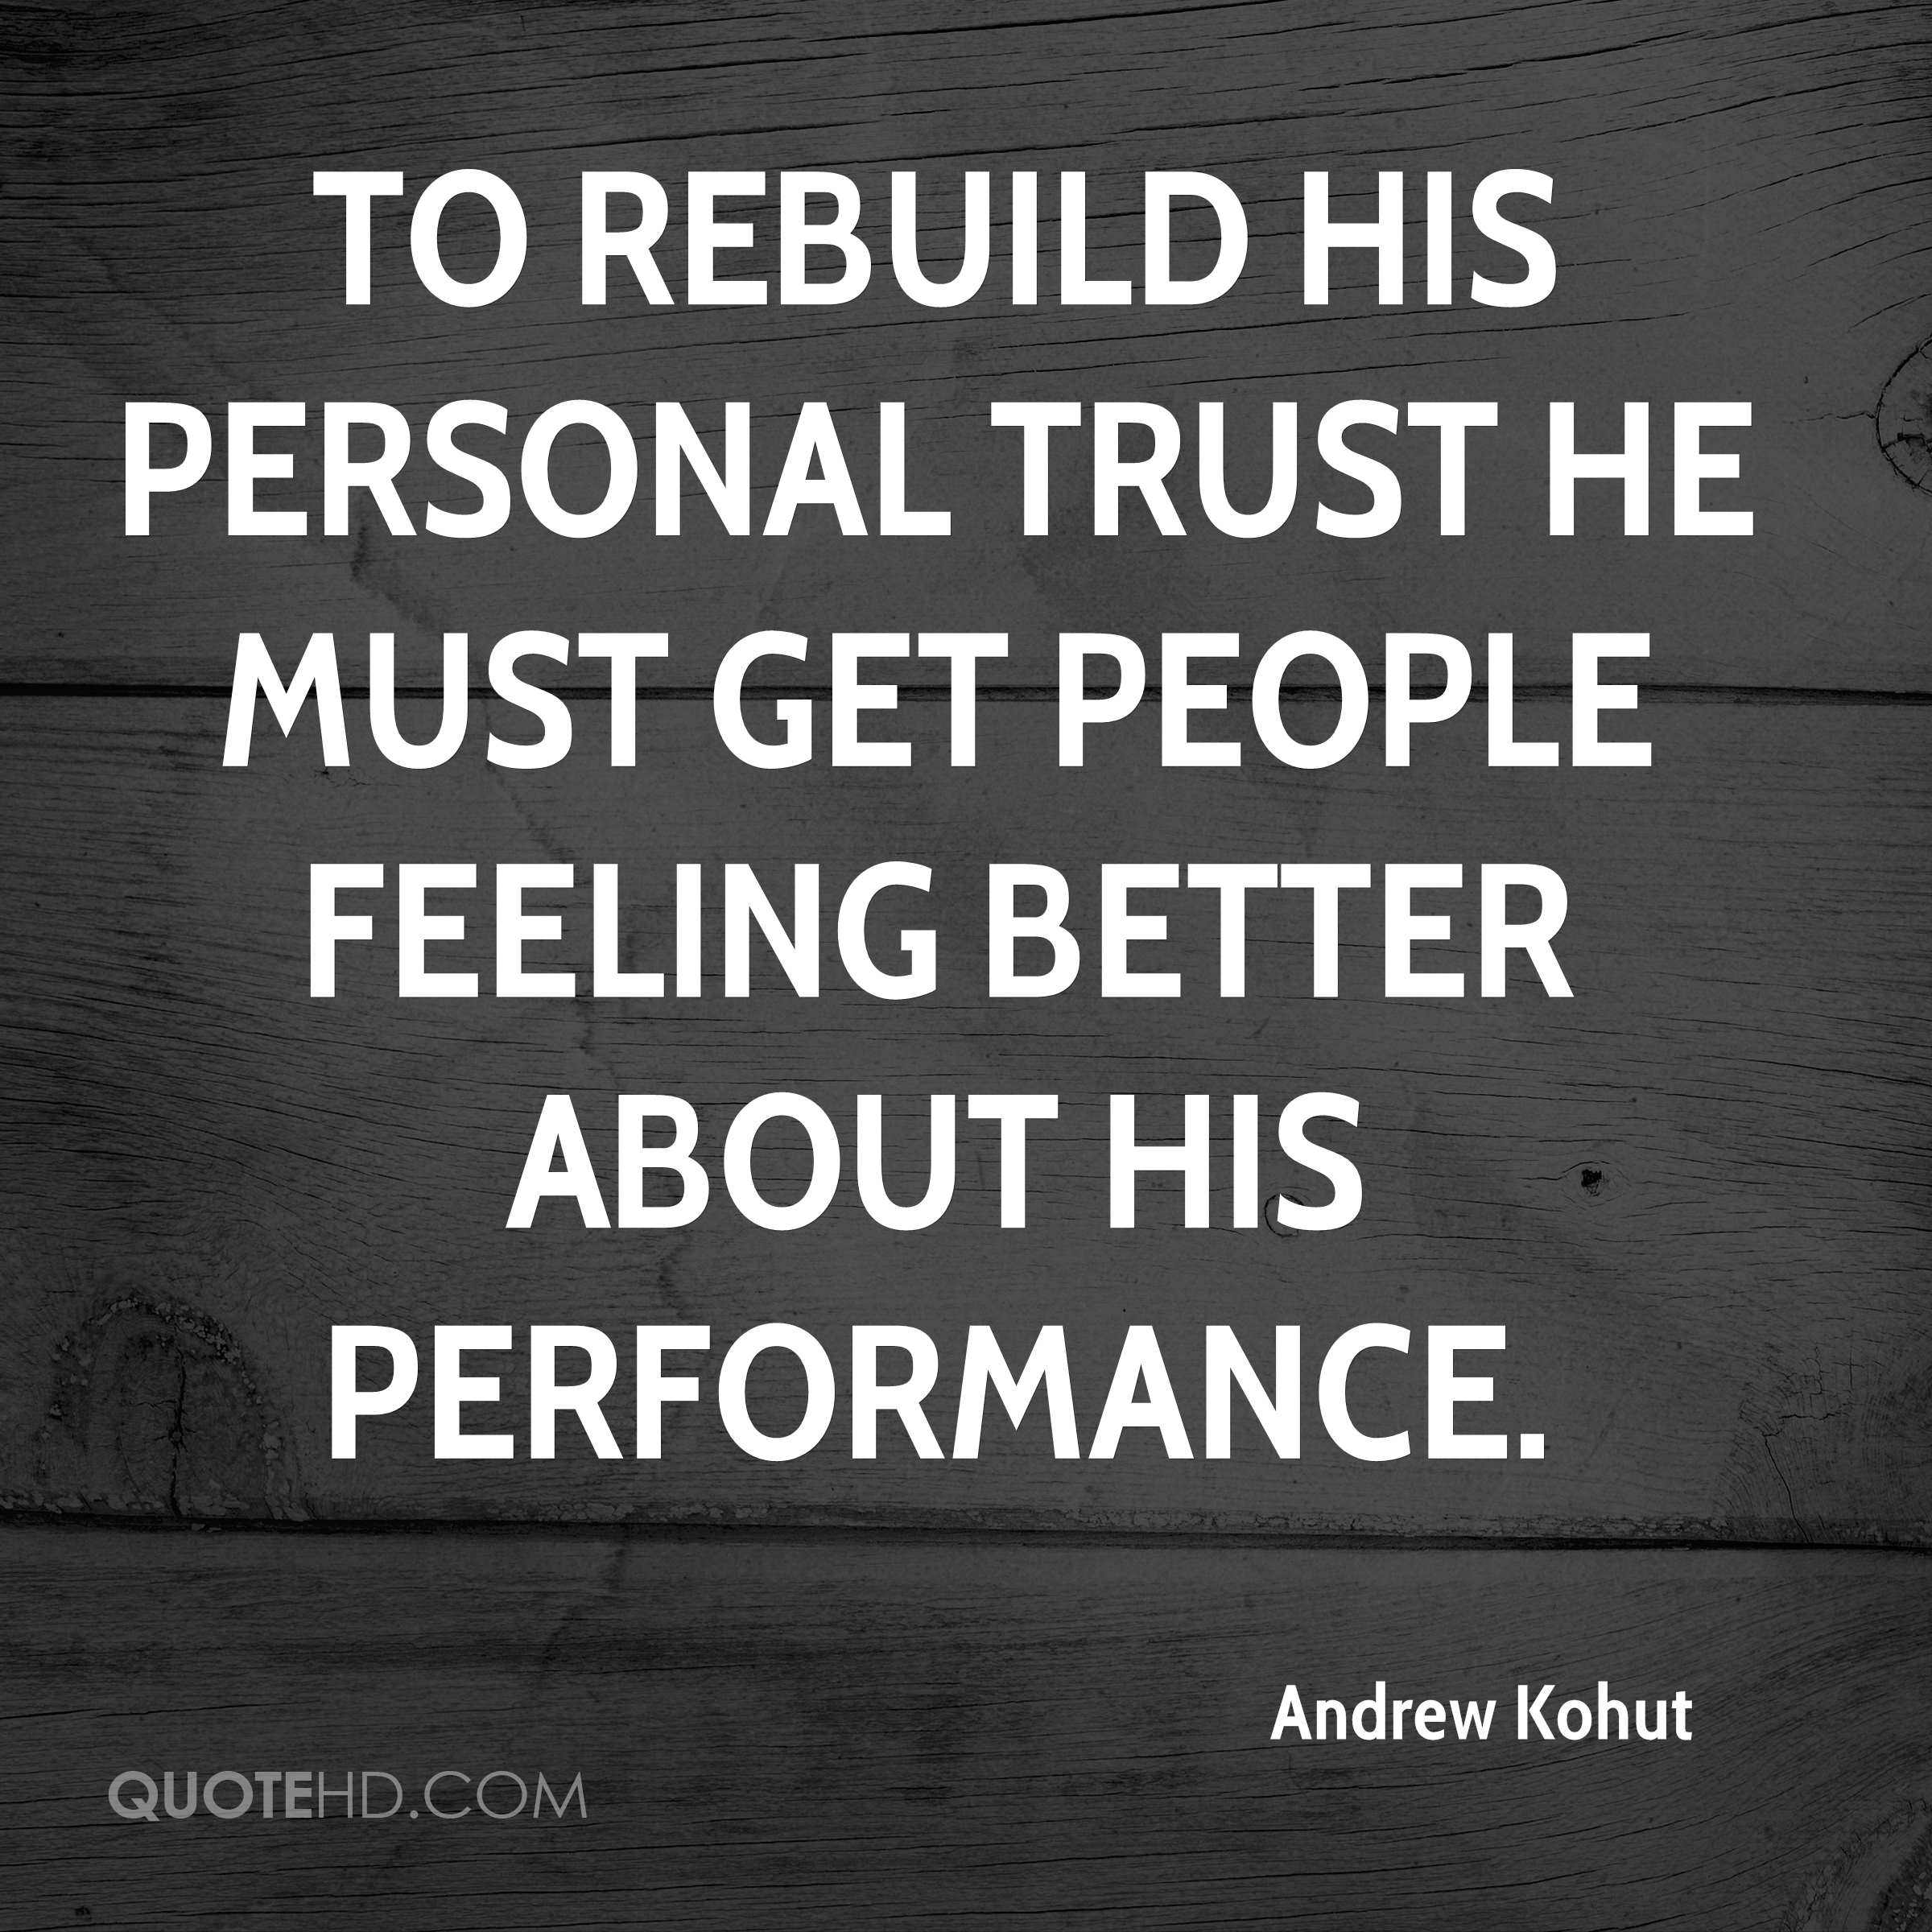 To rebuild his personal trust he must get people feeling better about his performance.